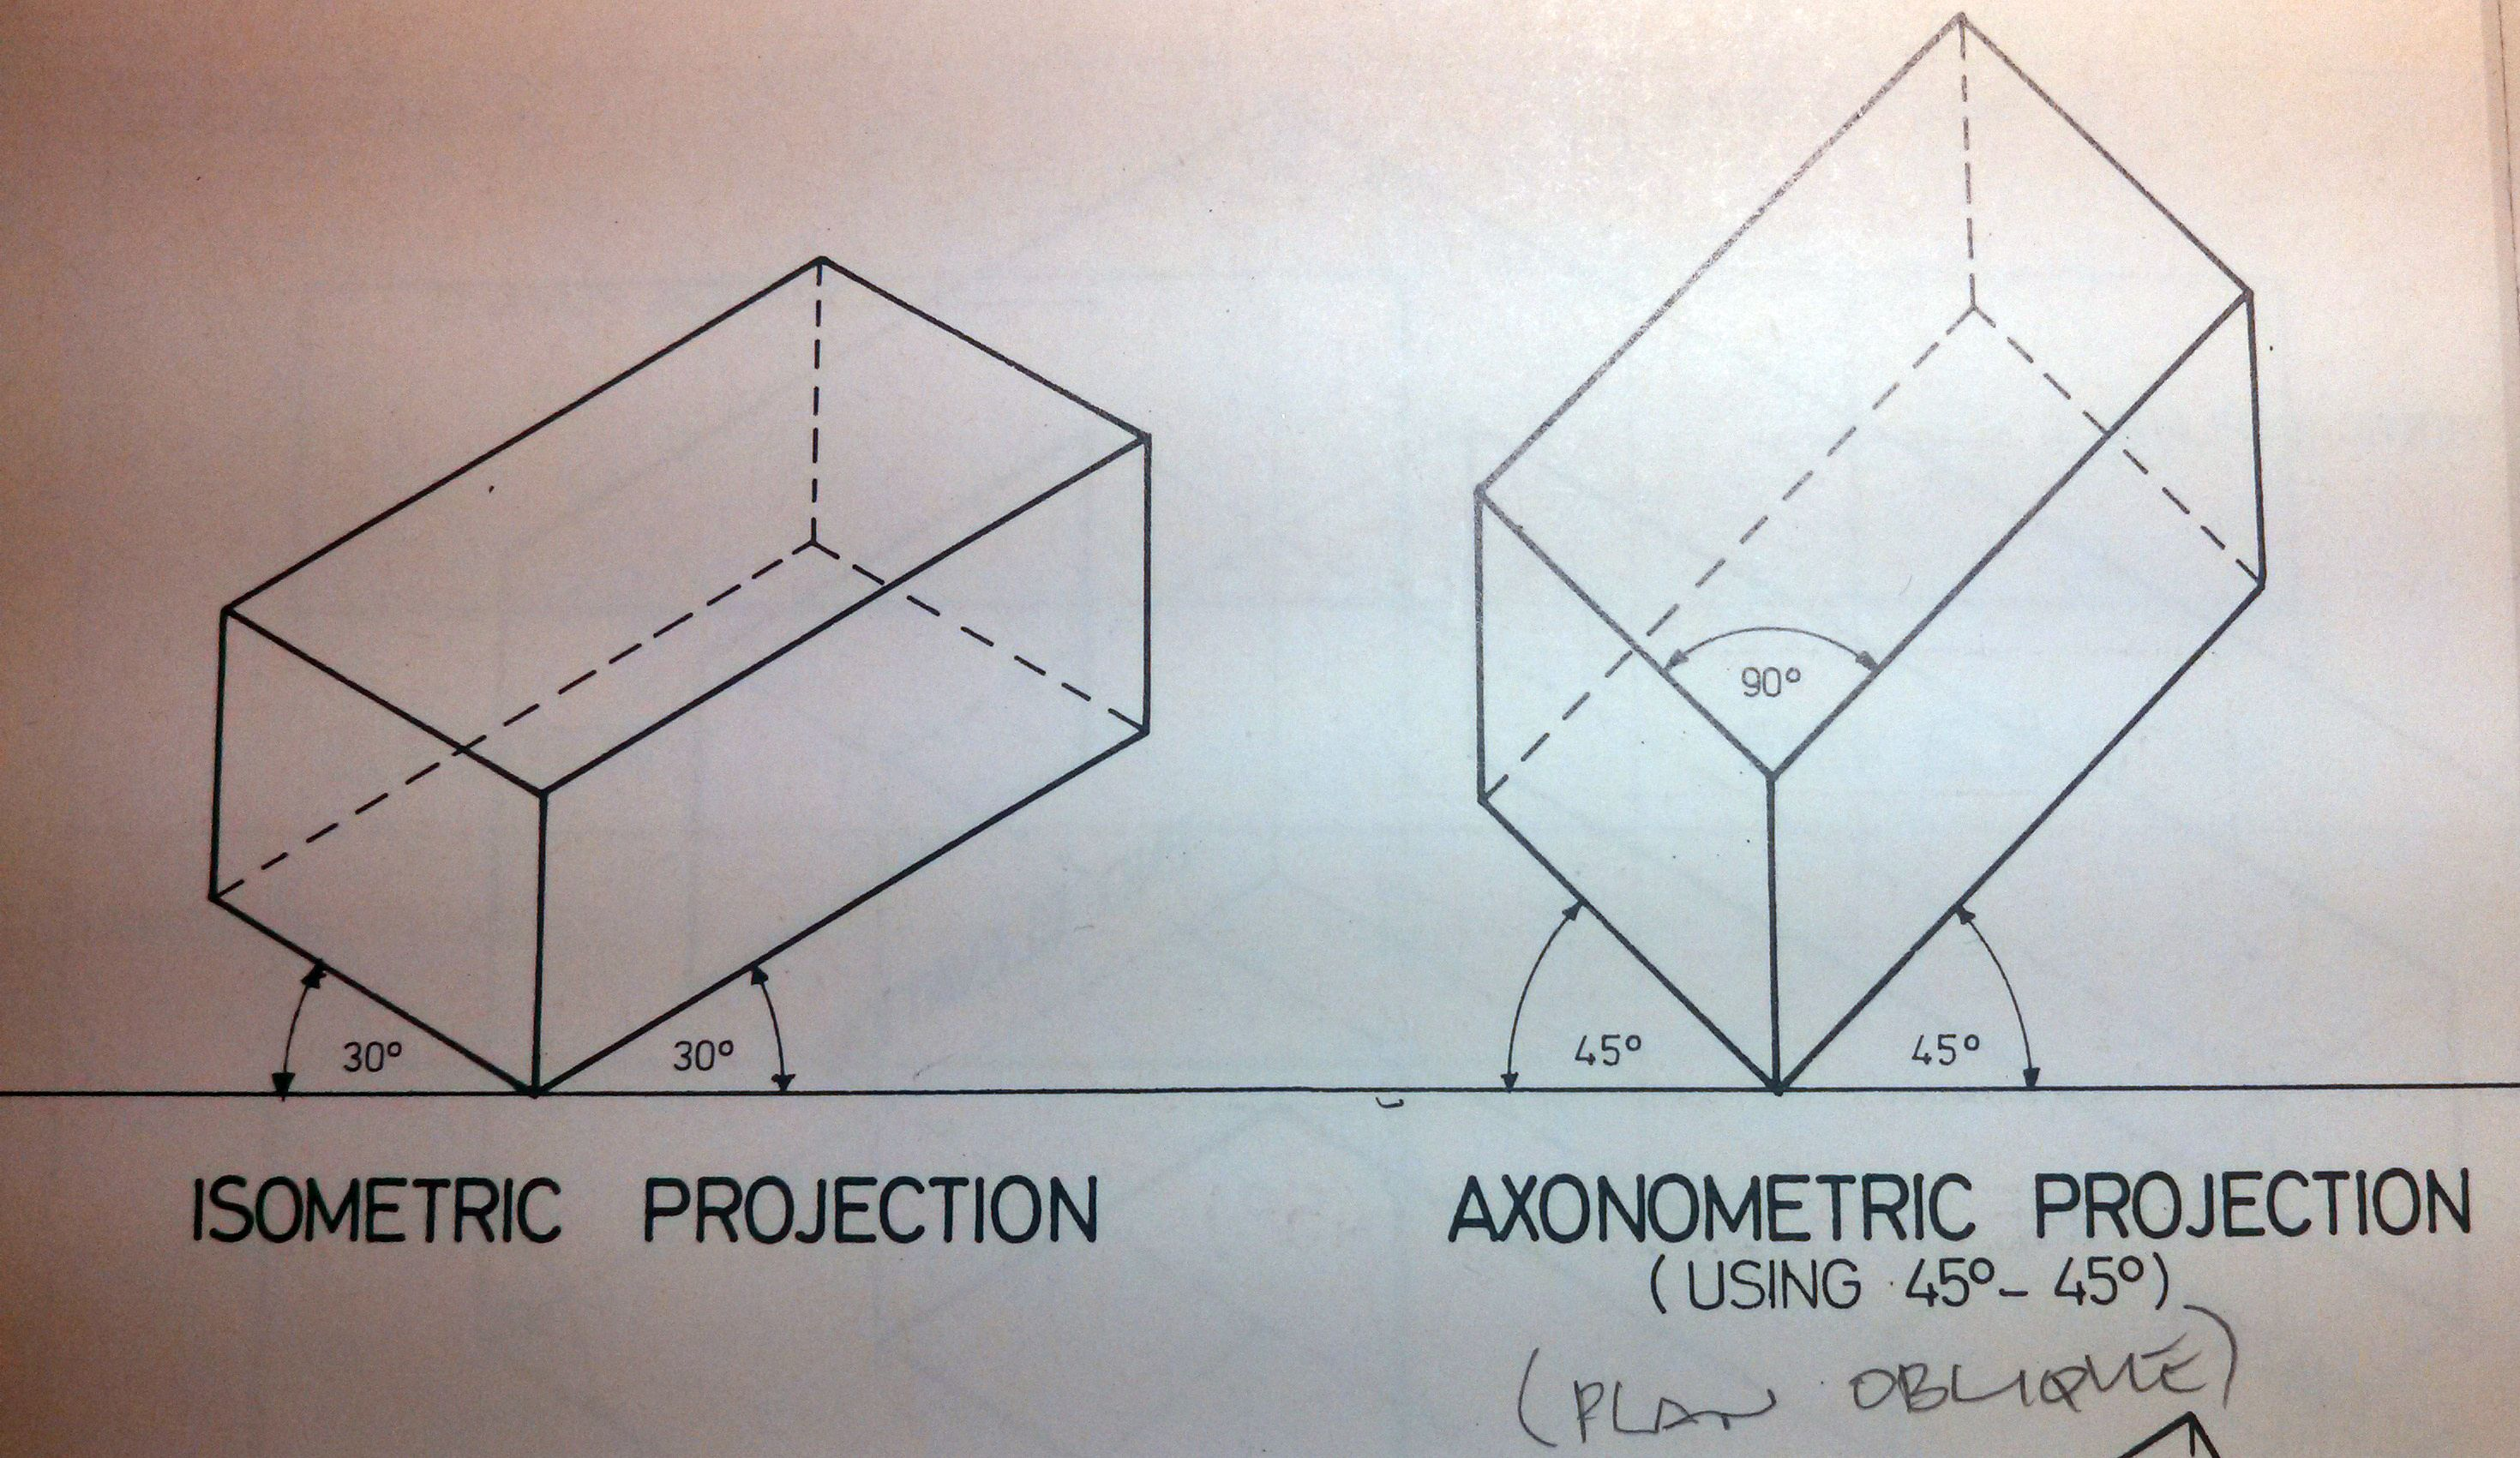 Isometric Projection Axonometric Projection